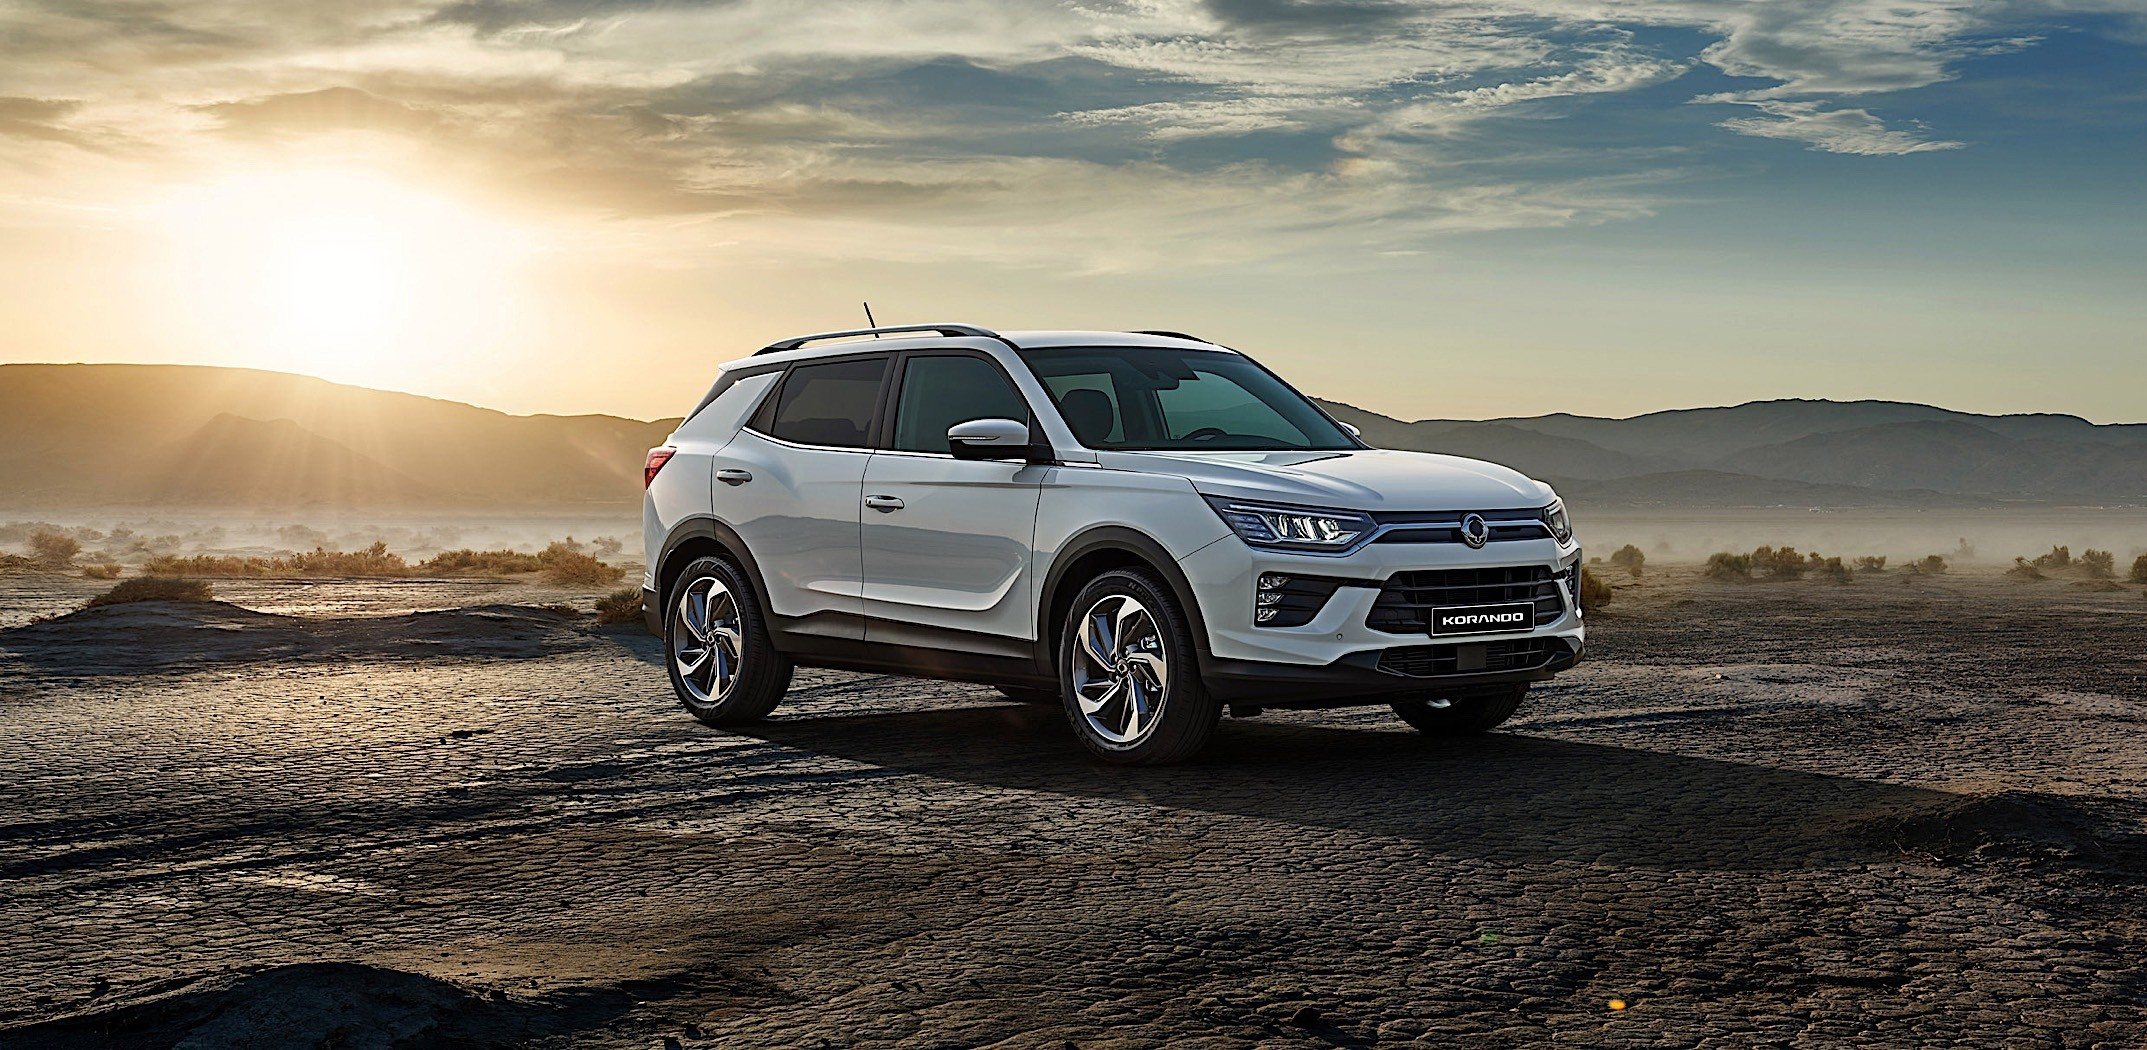 2020-ssangyong-korando-storms-geneva-with-fresh-appeal_2.jpg